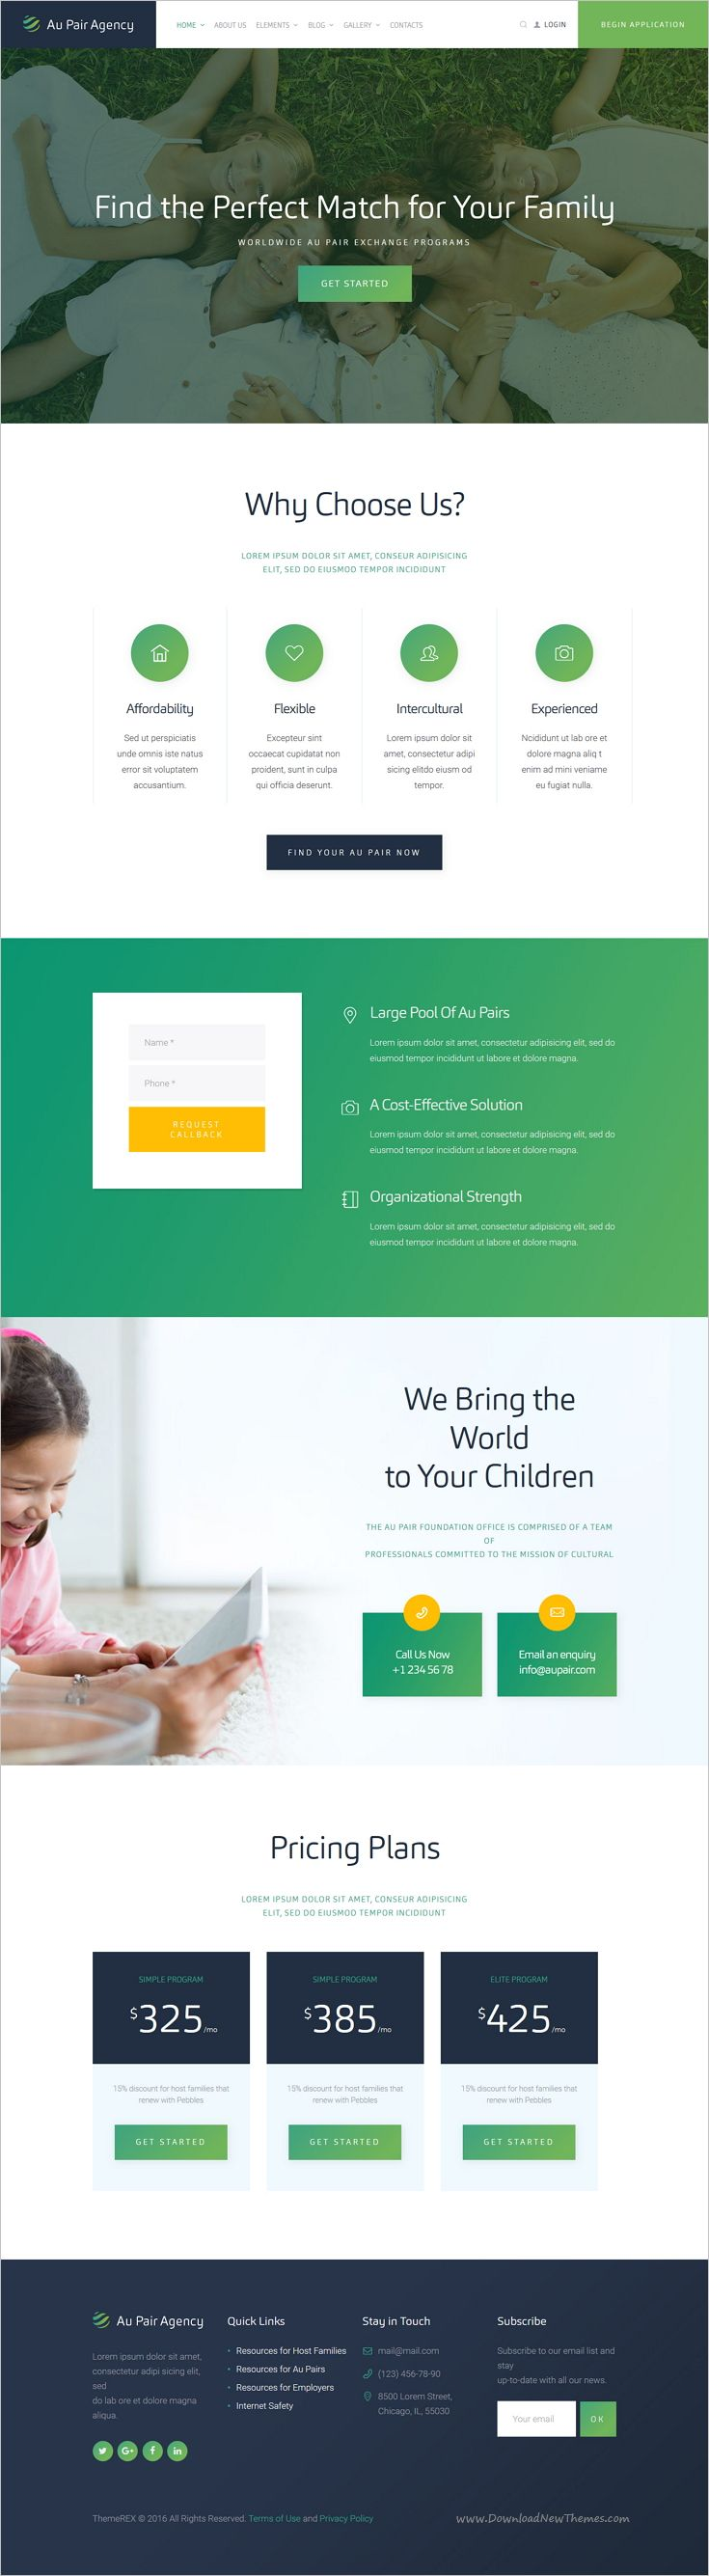 Au-Pair is a wonderful responsive #WordPress theme for #babysitting and #nanny agency website download now➩  https://themeforest.net/item/aupair-babysitting-nanny-agency-theme/16883968?ref=Datasata